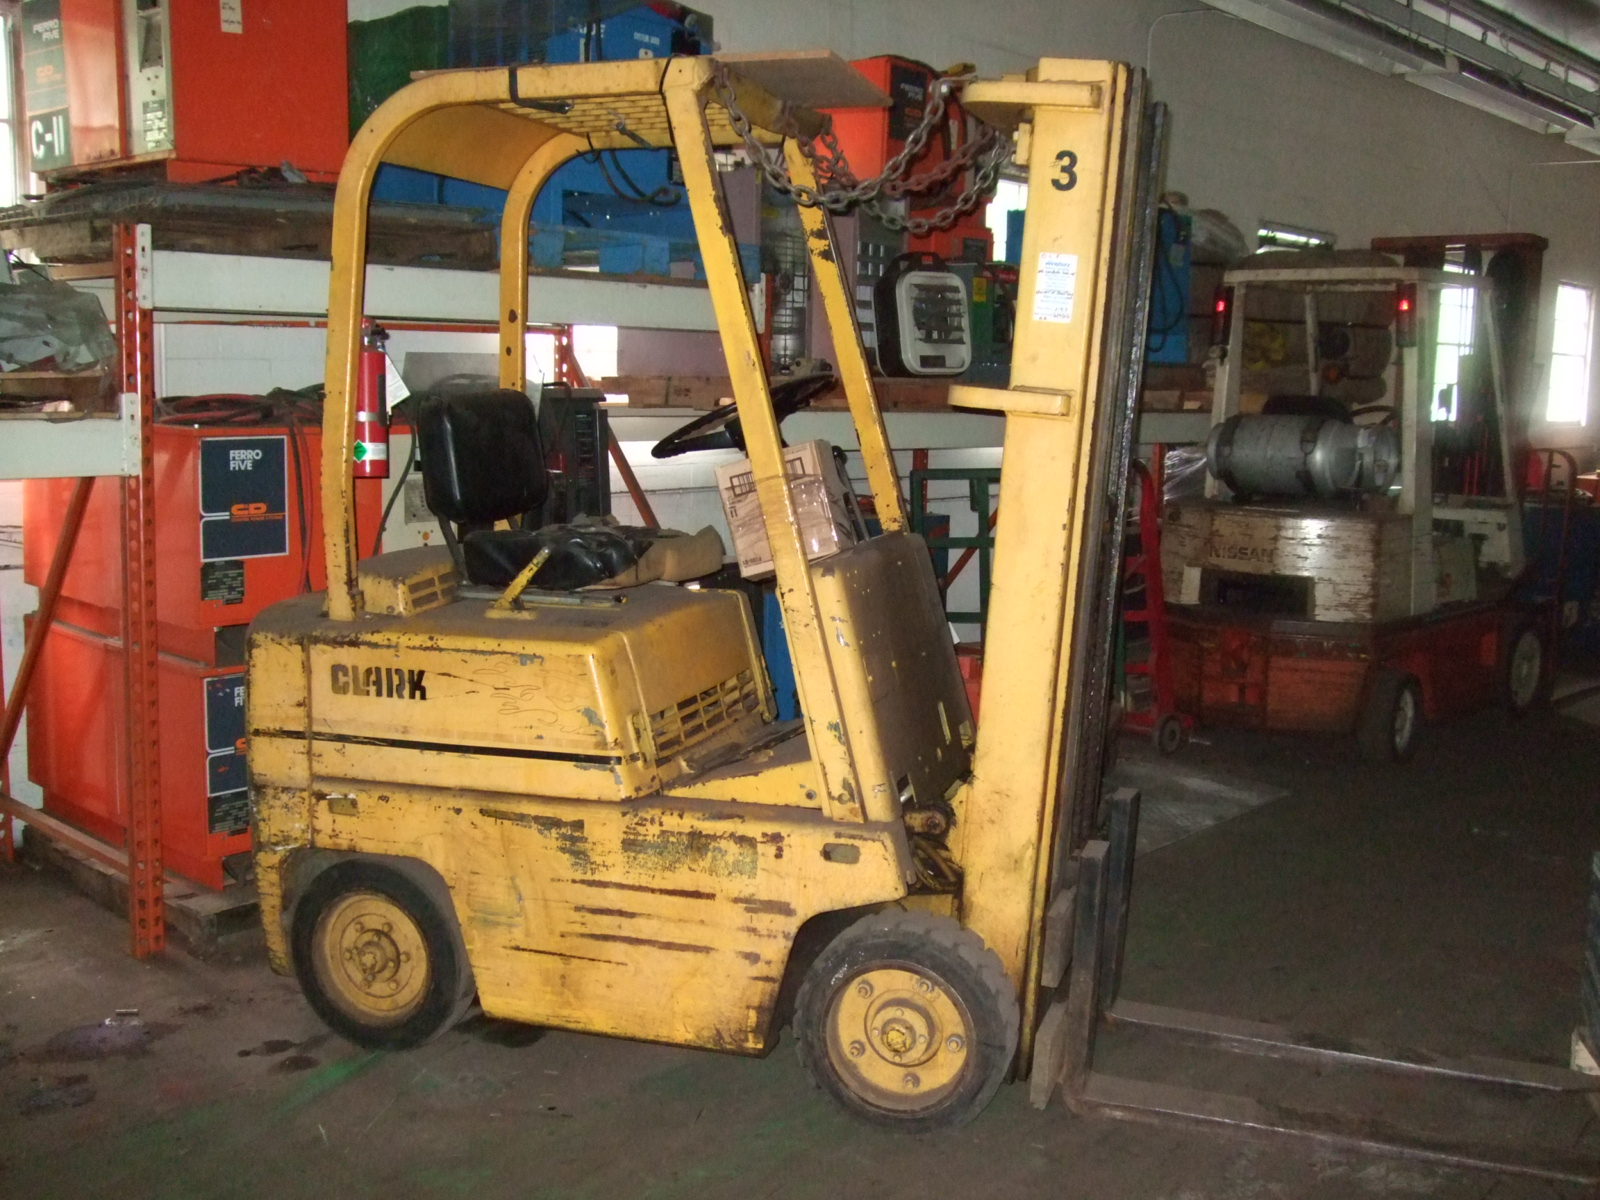 Clark forklift photo - 3